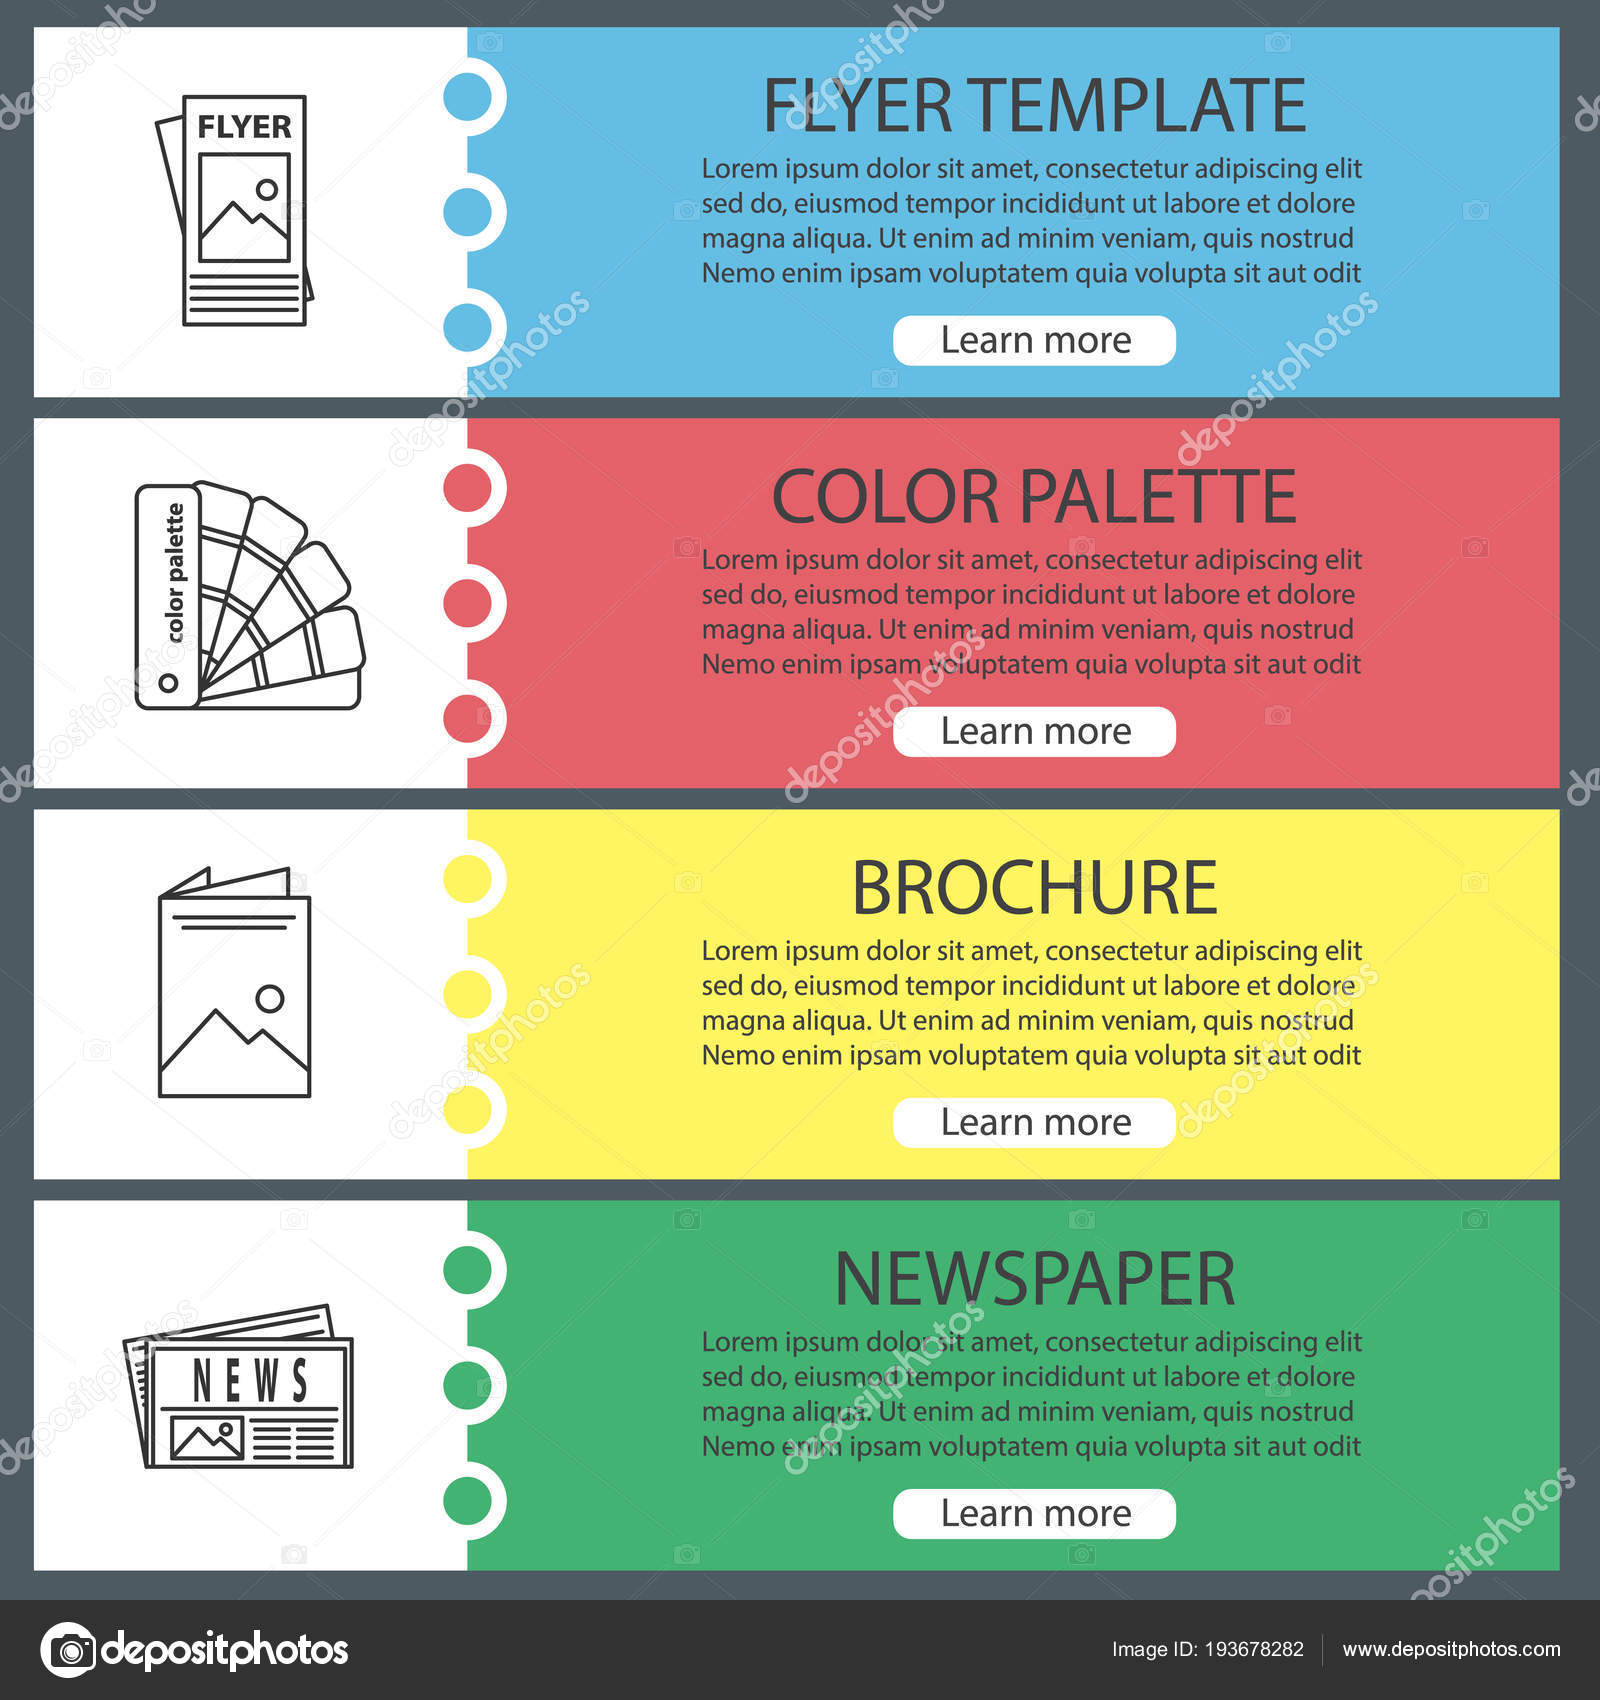 printing web banner templates set flyer template color palette